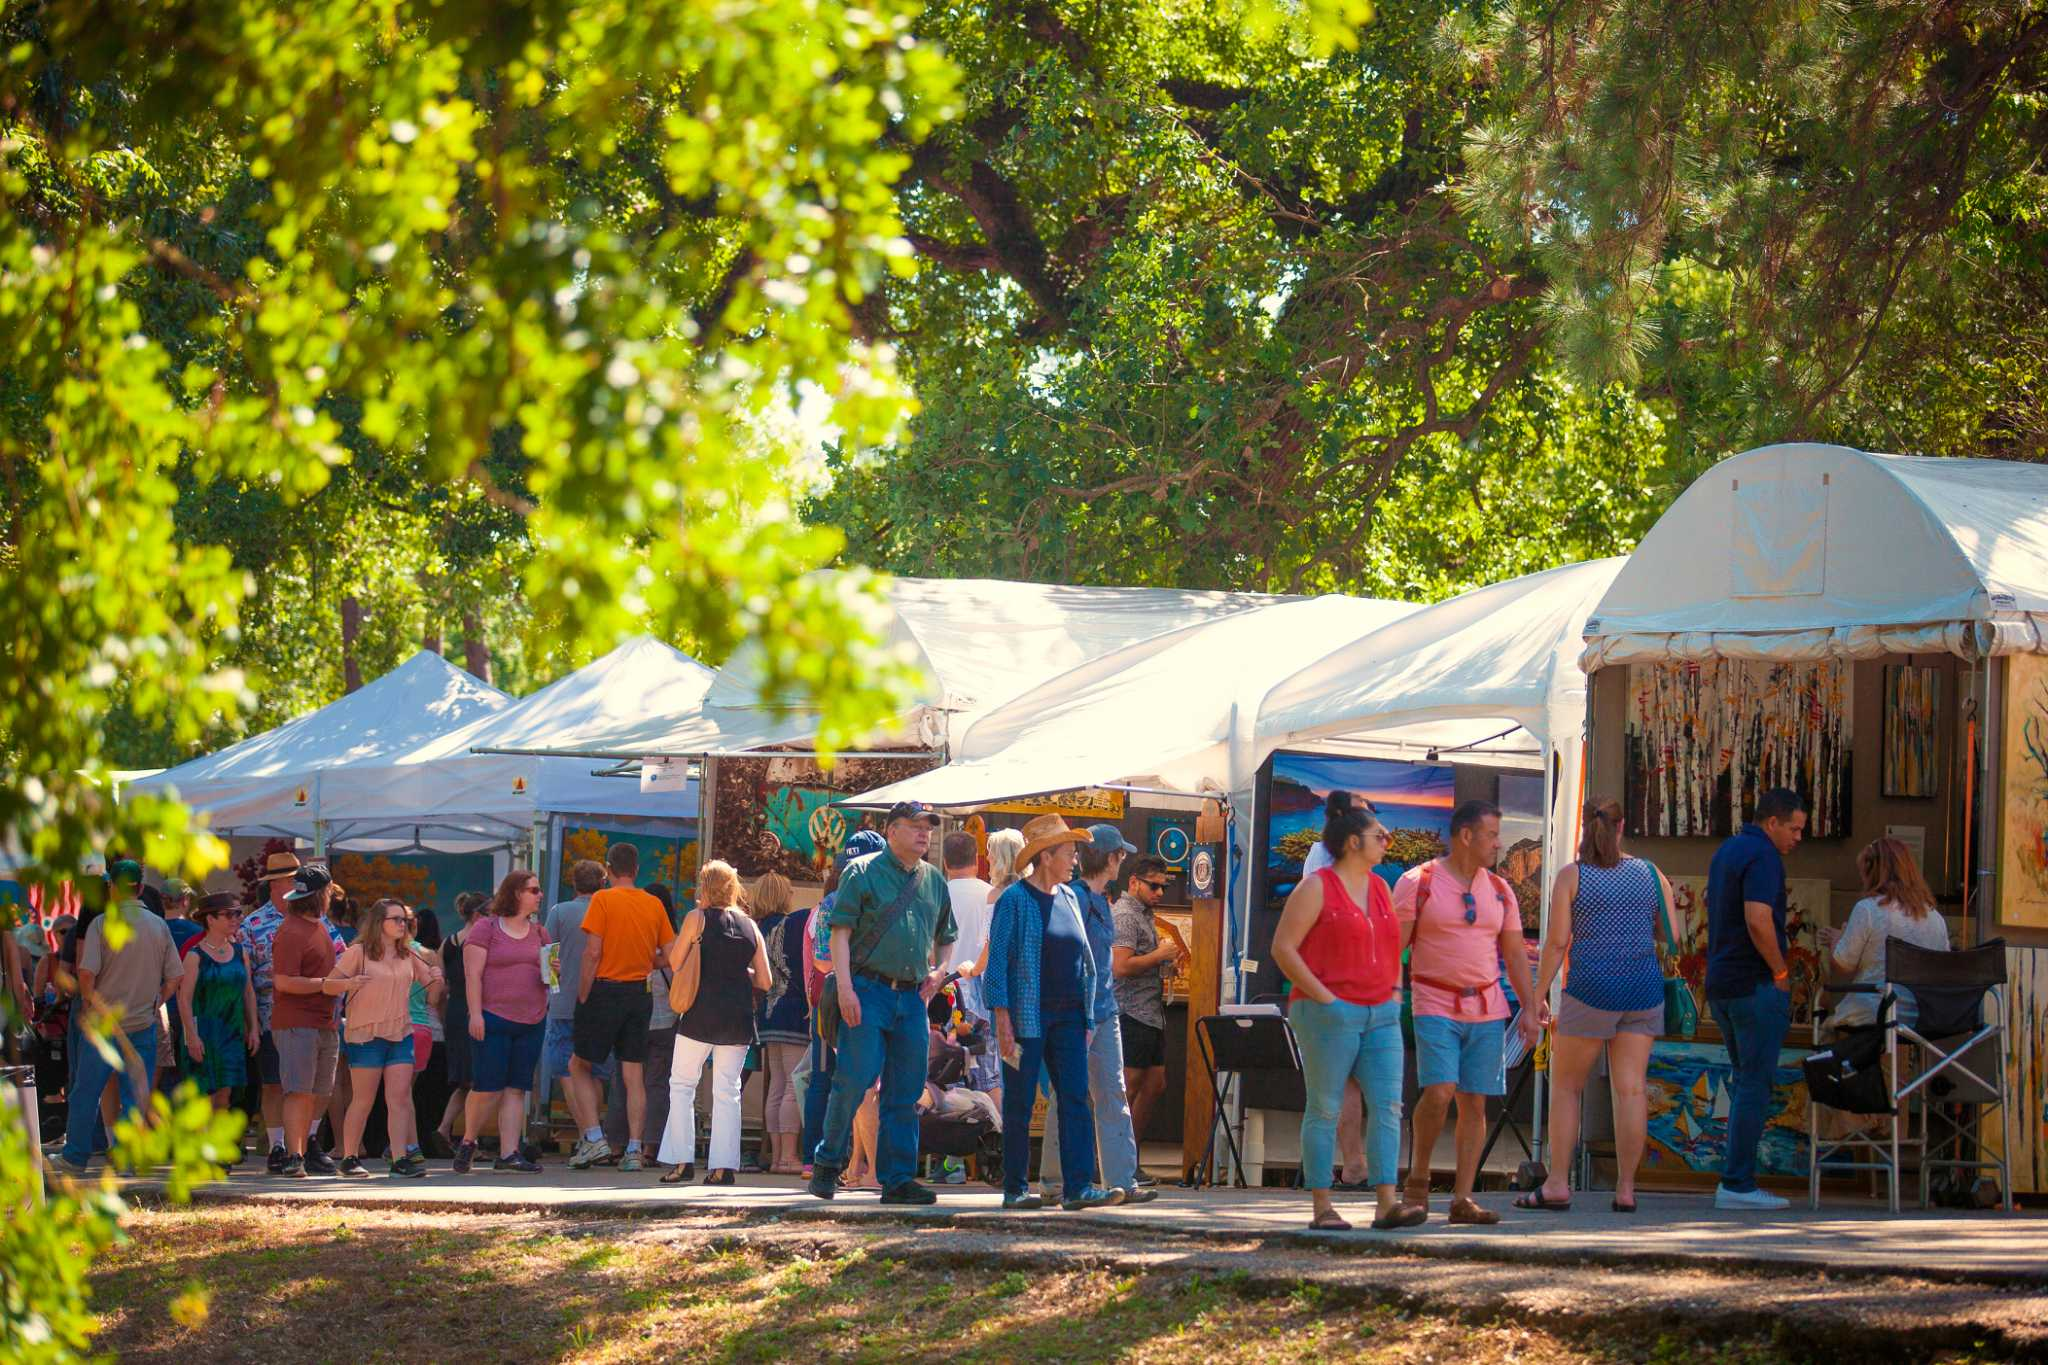 Bayou City Art Festival slated for March 23-25